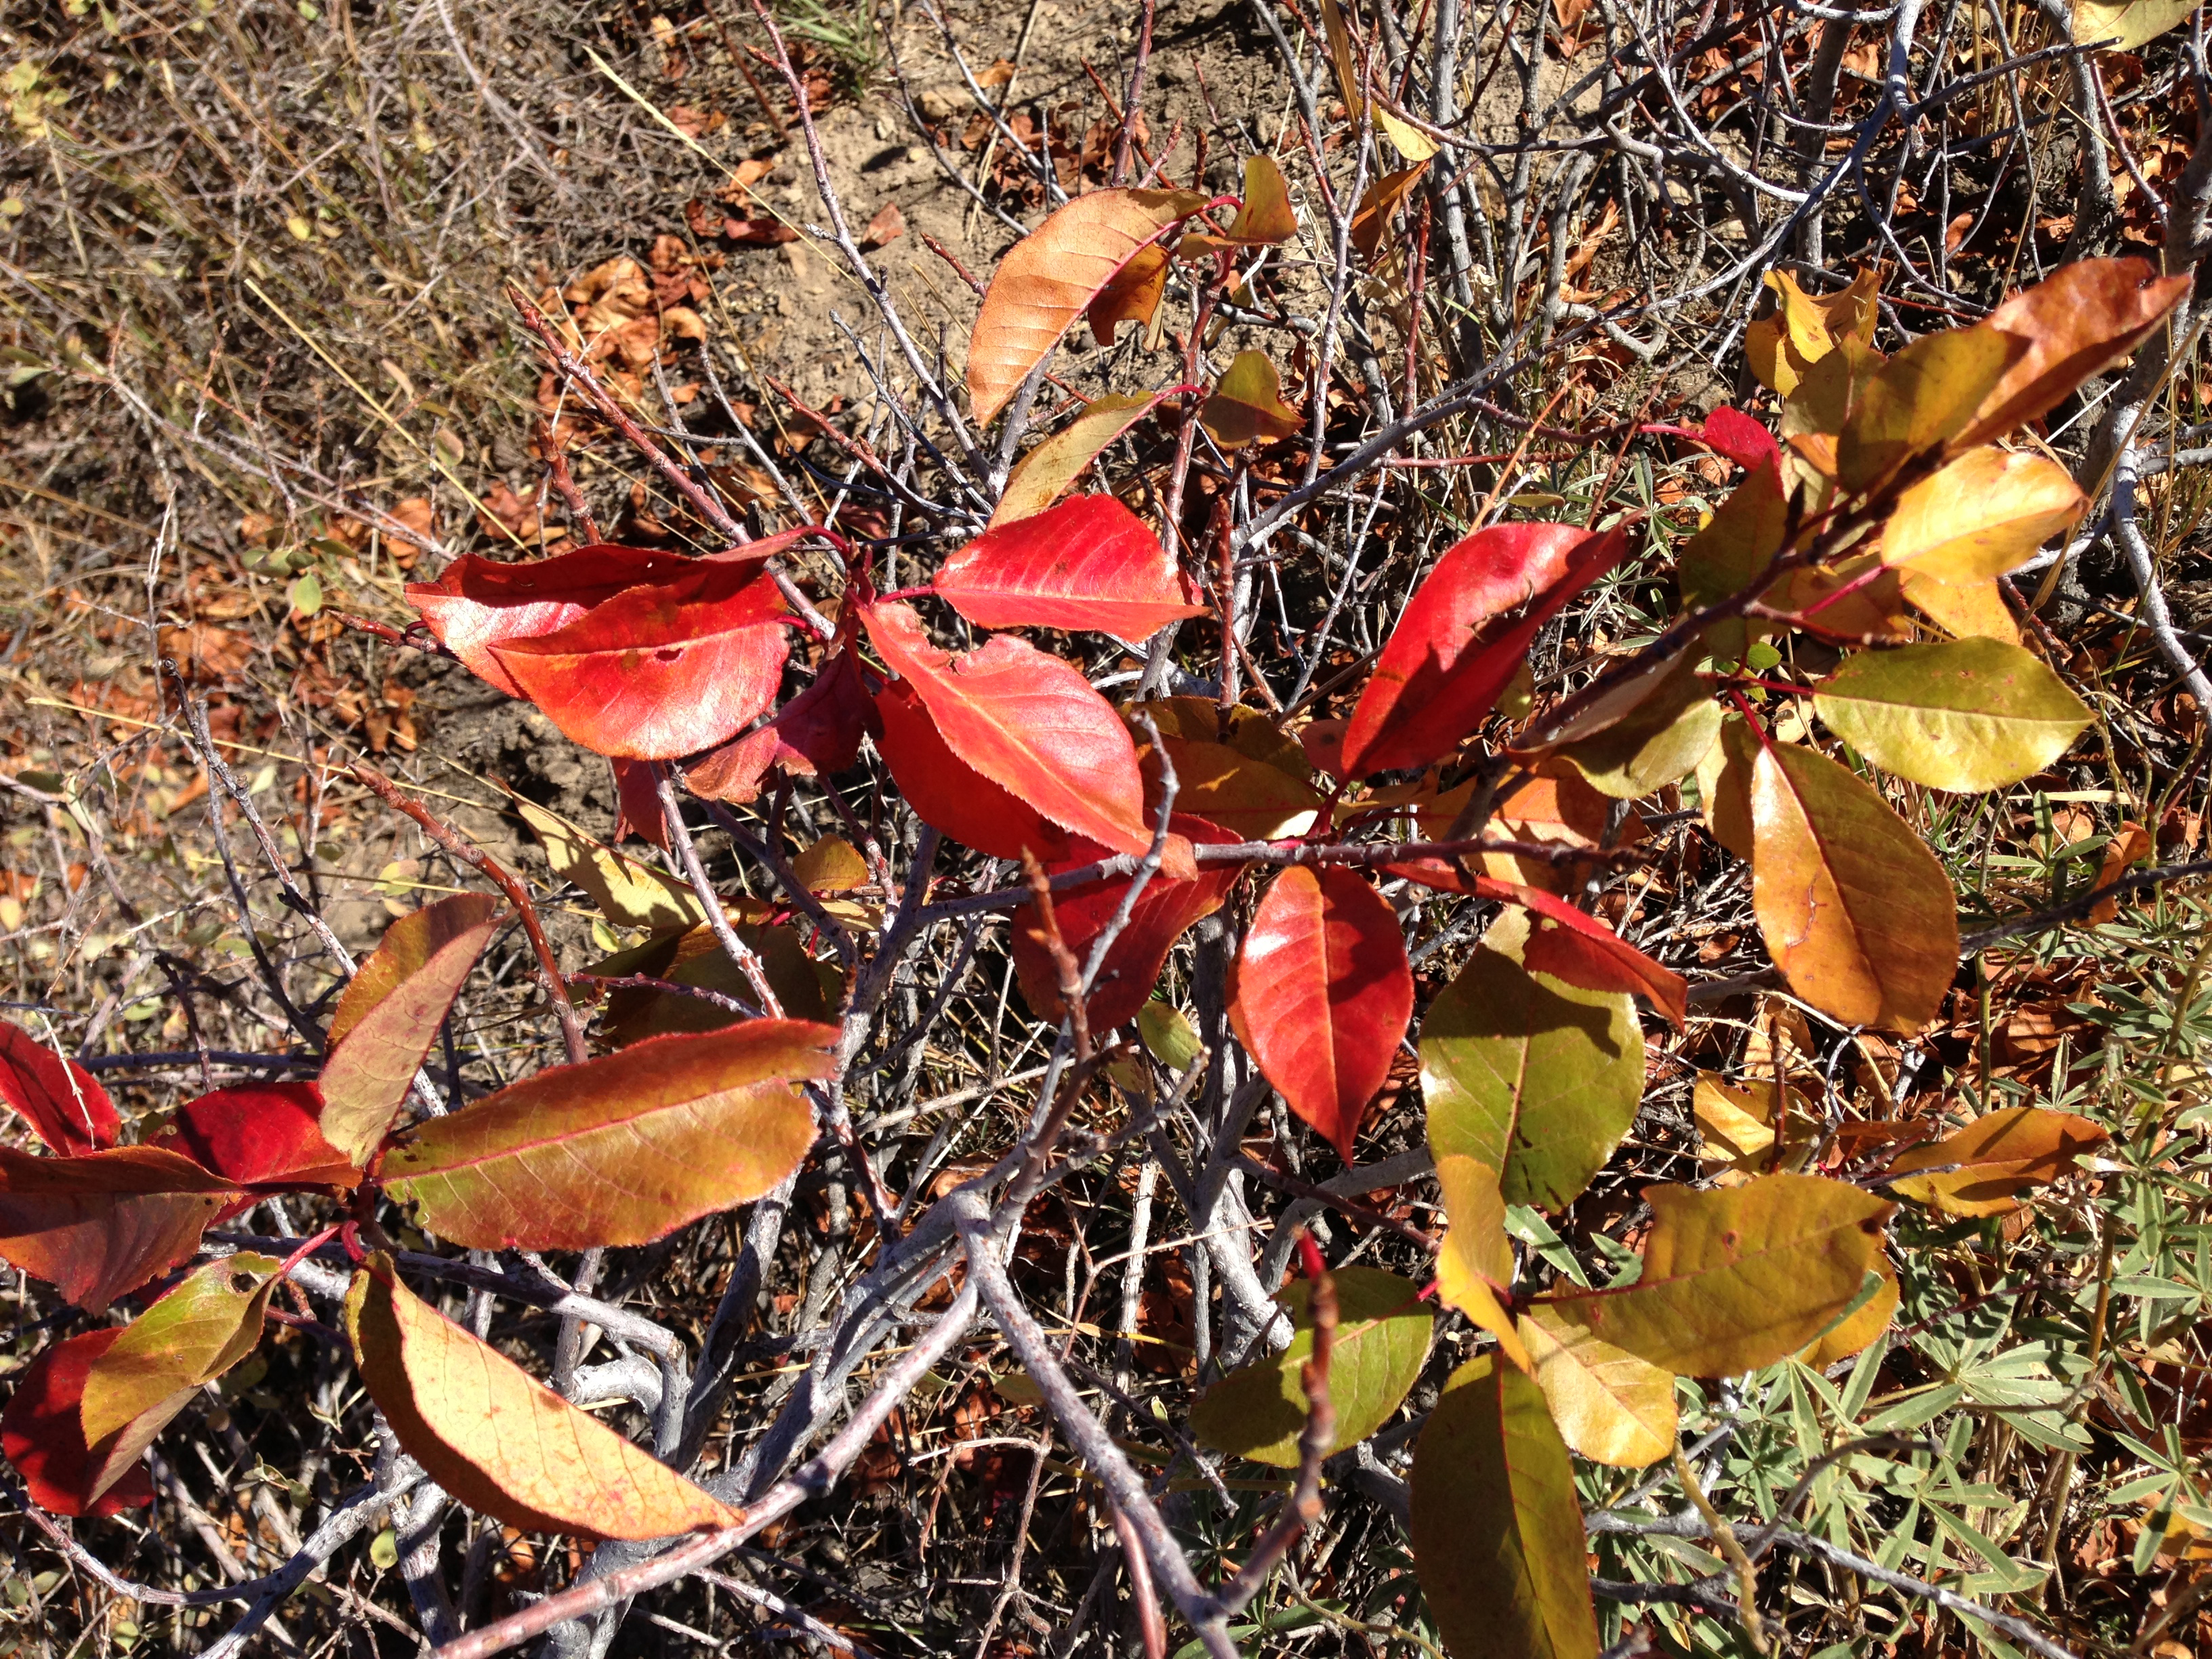 western chokecherry showing autumn foliage